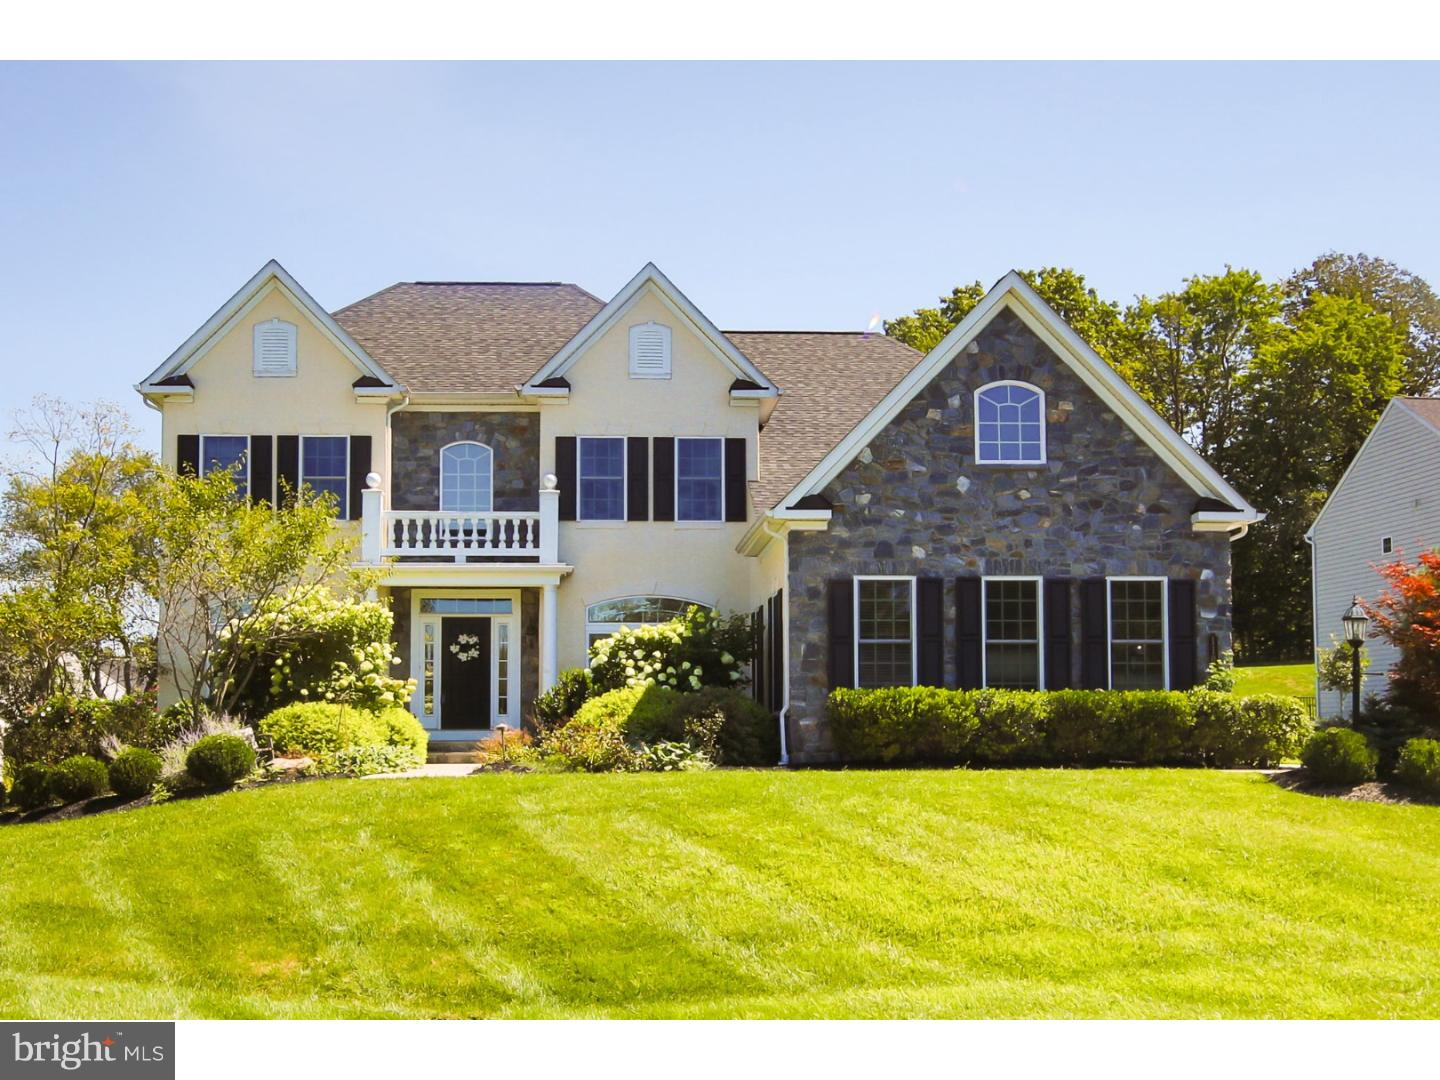 1106 Judson Drive West Chester, PA 19380